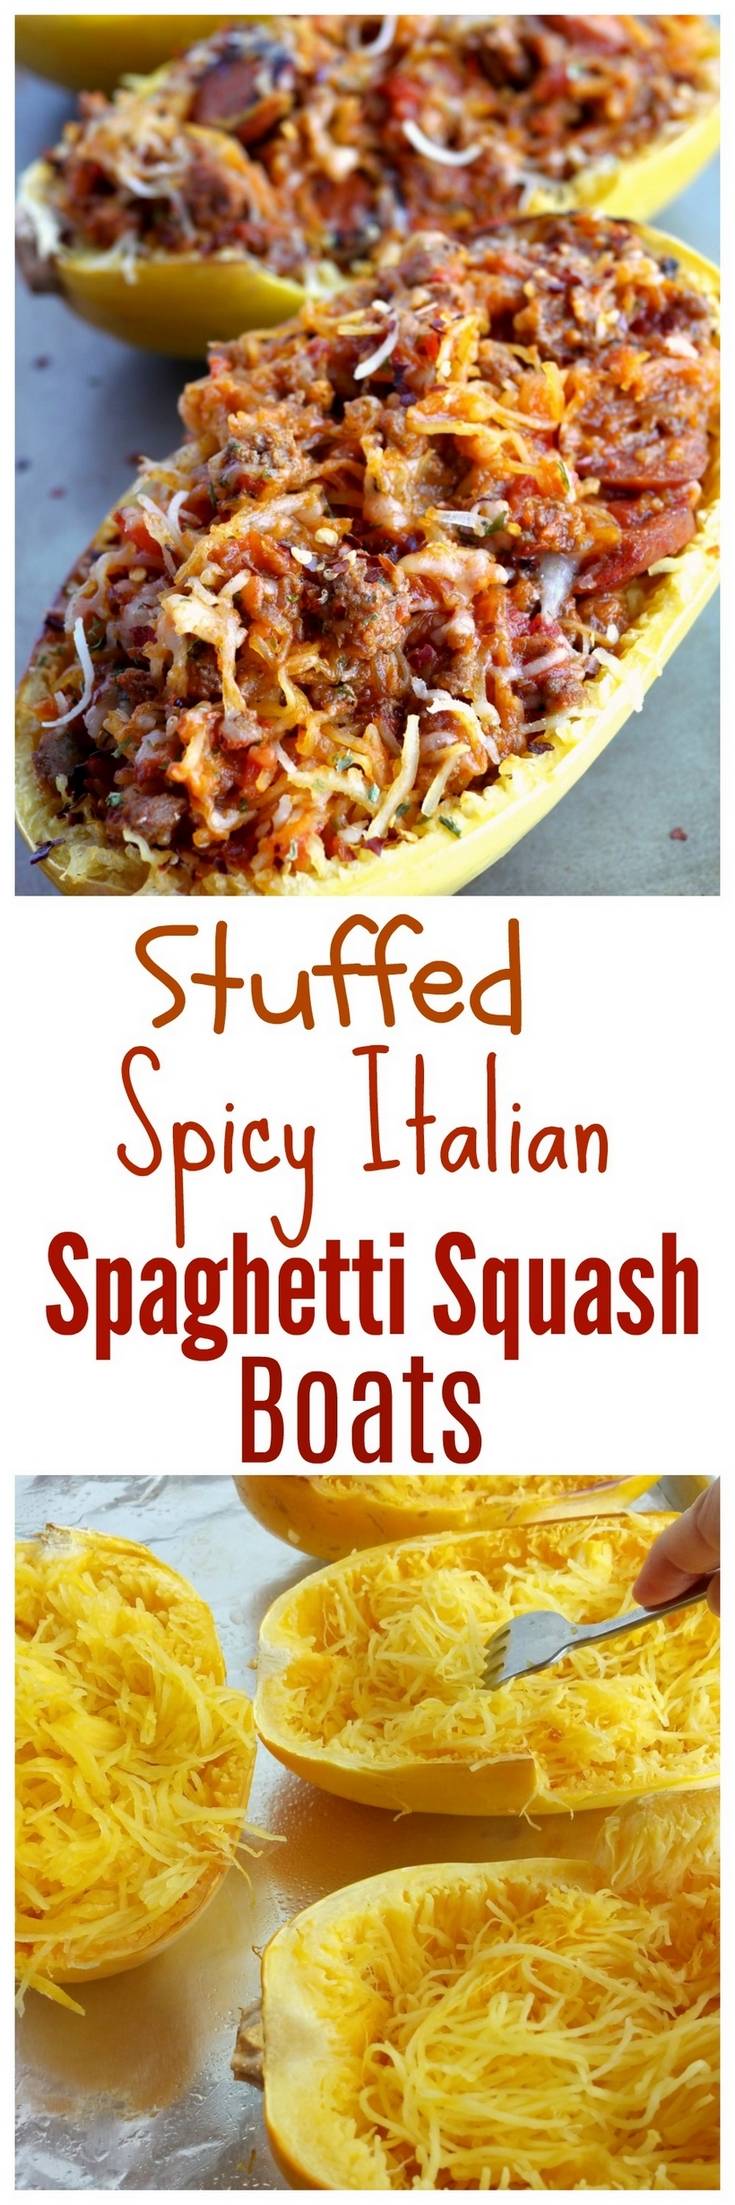 Stuffed Spicy Italian Spaghetti Squash Boats ~All the flavors of a hearty spaghetti dinner packed into a tender, roasted spaghetti squash. These Stuffed Spicy Italian Spaghetti Squash Boats are the answer to comfort food made in a healthy way. All the flavors of a hearty spaghetti dinner packed into a tender, roasted spaghetti squash. This Stuffed Spicy Italian Spaghetti Squash Boats recipe are the answer to comfort food made in a healthy way.  A fork is all it takes to separate the pale orange strands of the gourd into vegetable noodles. It couldn't be easier from NoblePig.com. #noblepig #spaghettisquash #italianfood #healthyeats via @cmpollak1